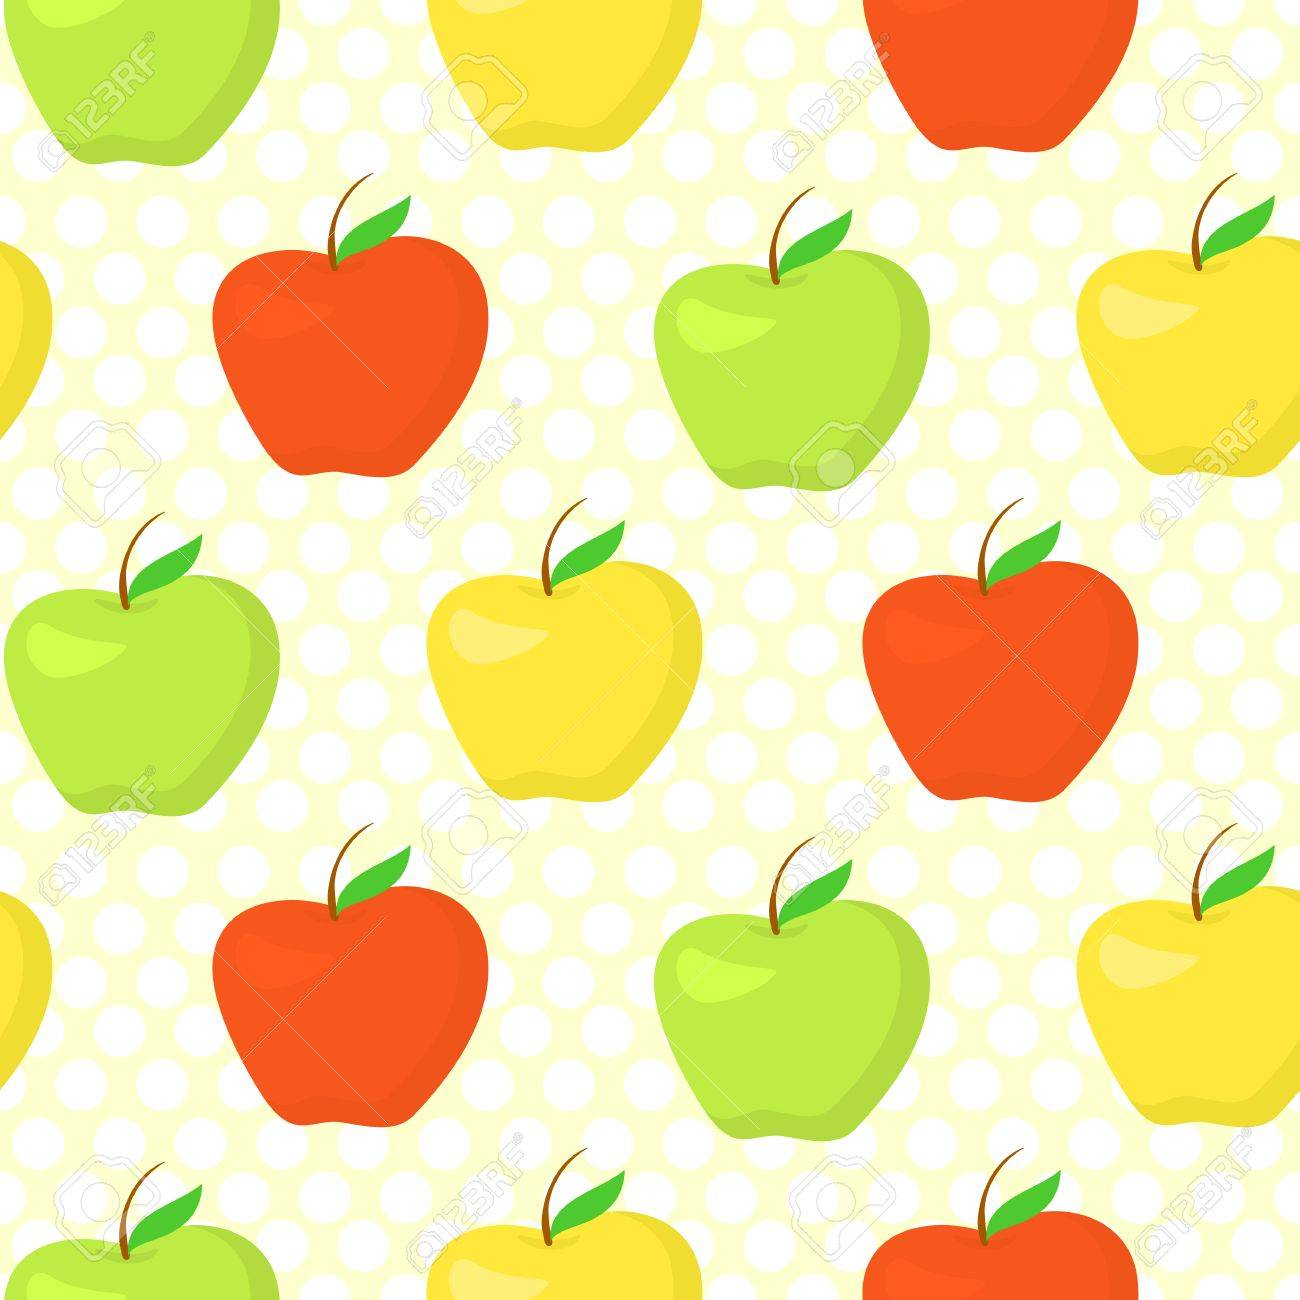 Rasch apples vinyl kitchen wallpaper 824506 cream cut price - 47 Best Images About Kitchen Wallpaper On Pinterest Blue Fabric